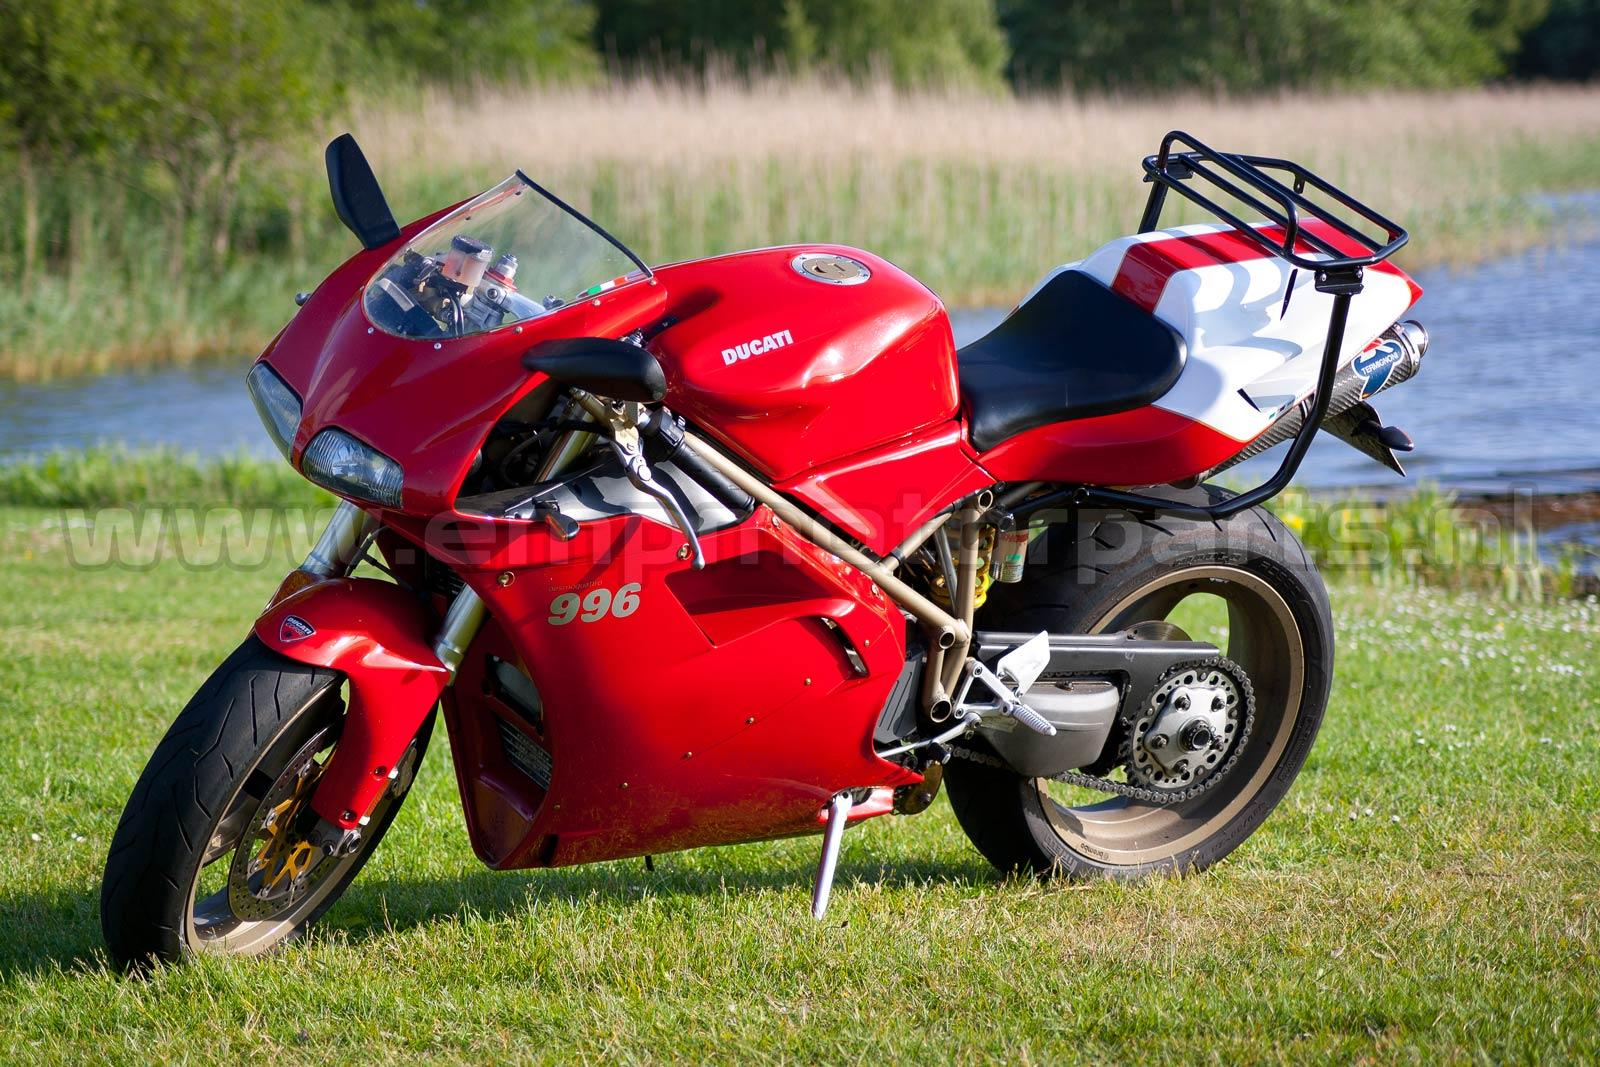 Bagagedrager Ducati Ducati 996 + Biposto low as 2000 (2)